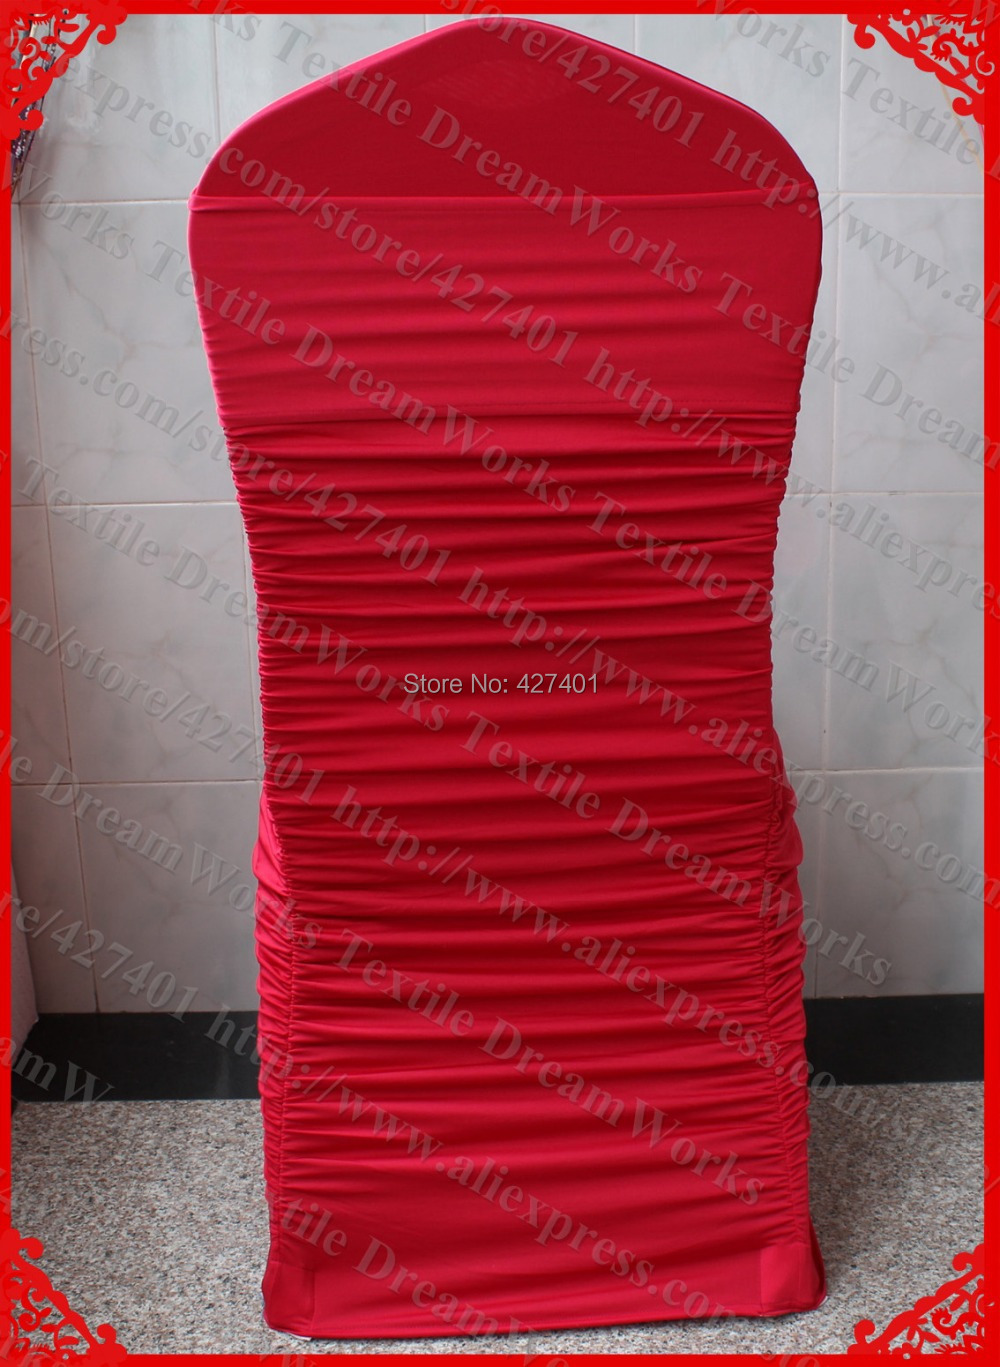 lycra chair covers nz hanging brisbane no 14 dark red ruffled spandex cover sash with band for wedding party banquet home decorations